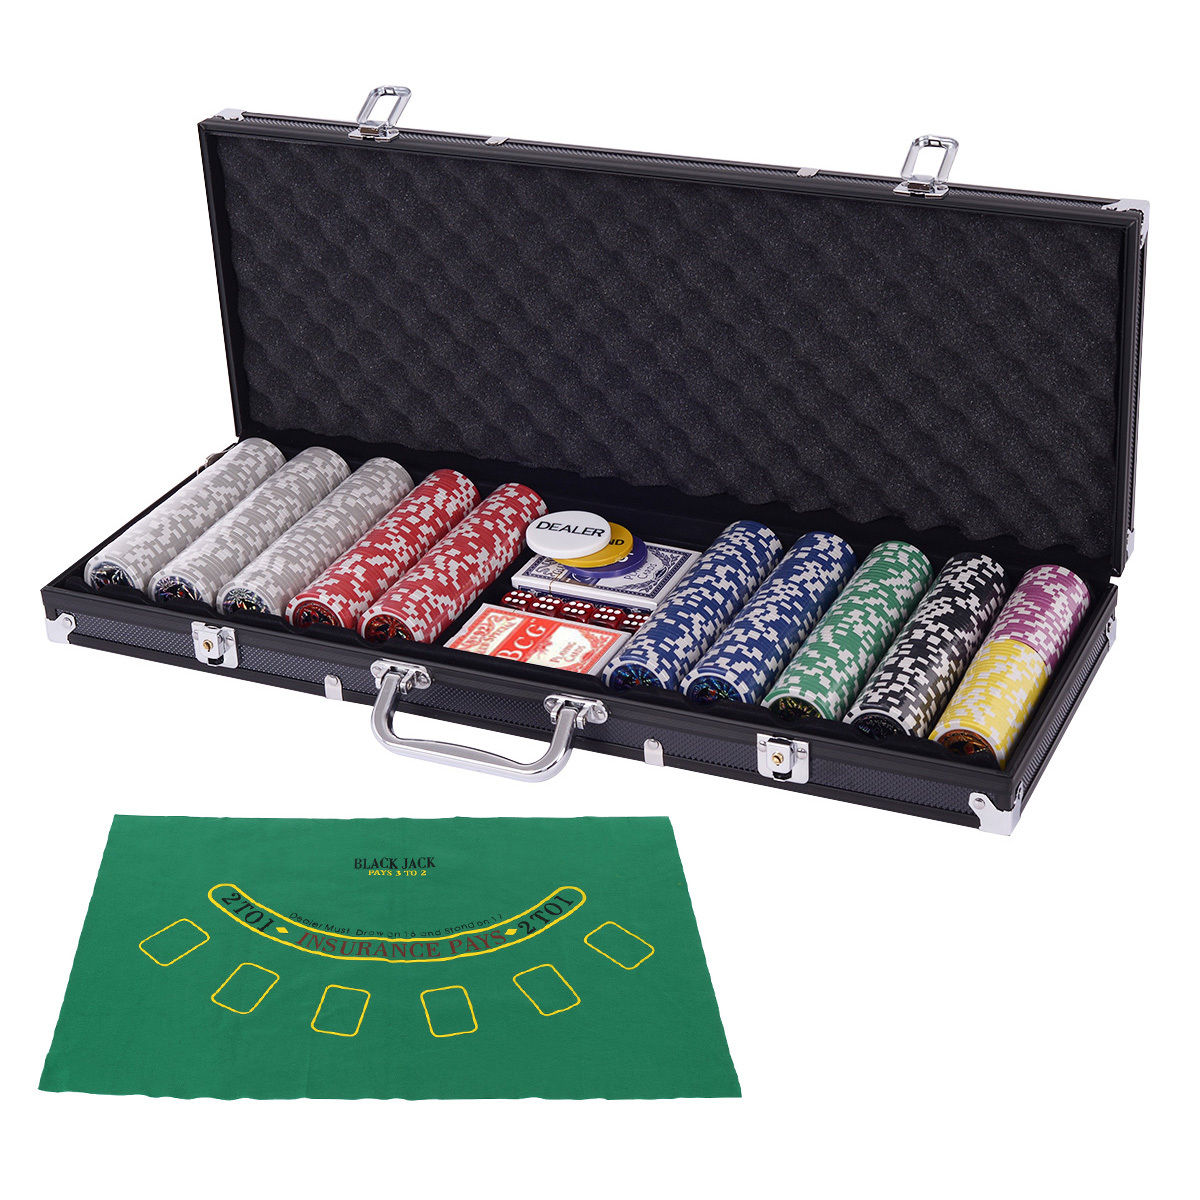 Costway Poker Chip Set 500 Dice Chips Texas Hold'em Cards with Black Aluminum Case